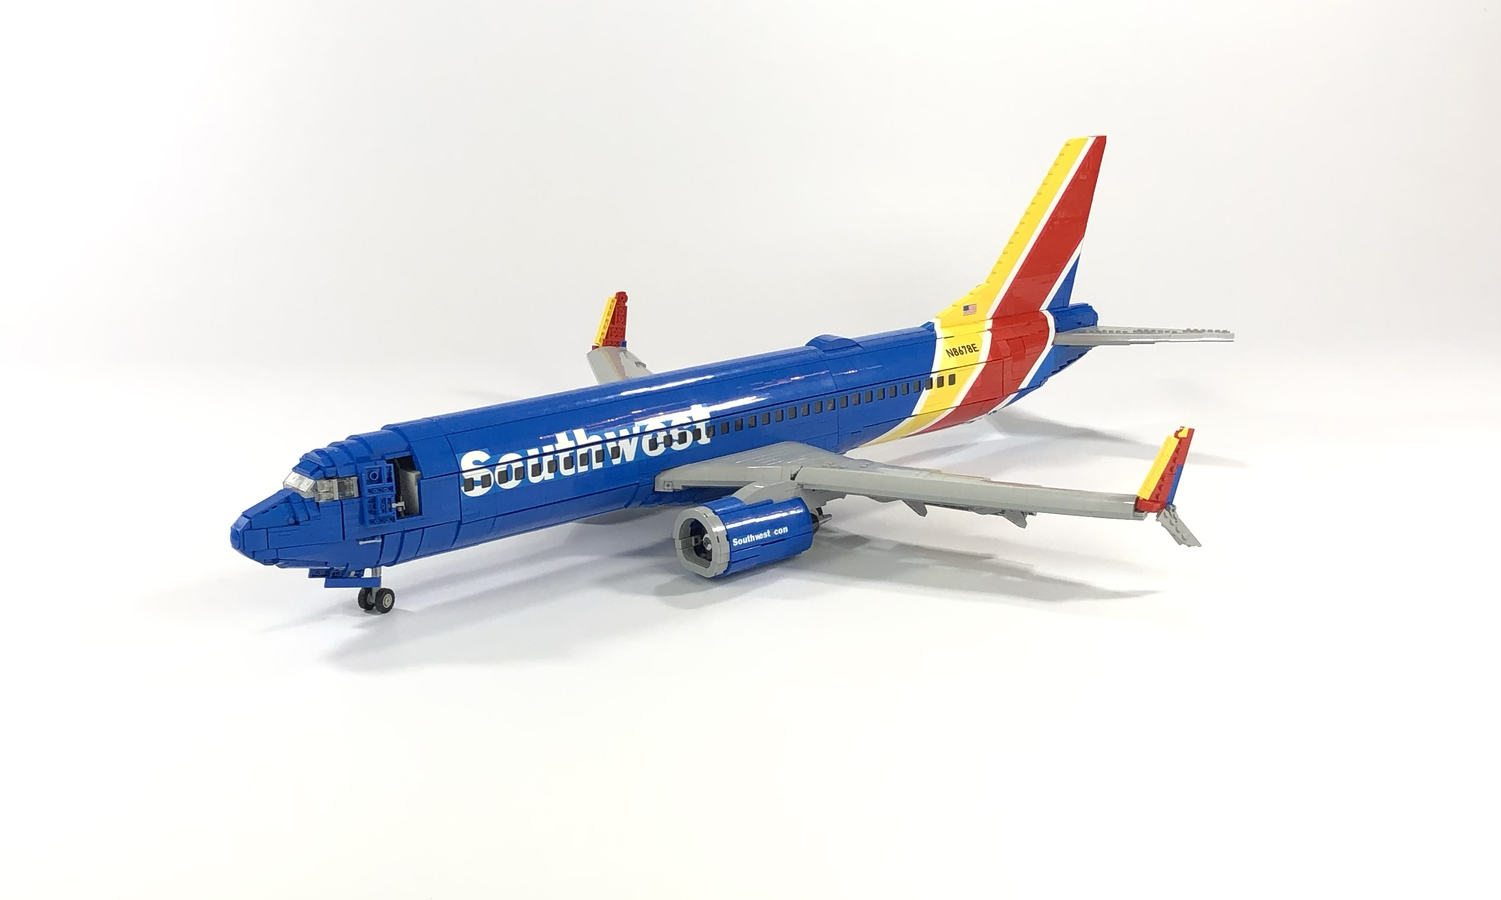 lego-ideas-southwest-737-800-bigplanes-customs-1 zusammengebaut.com